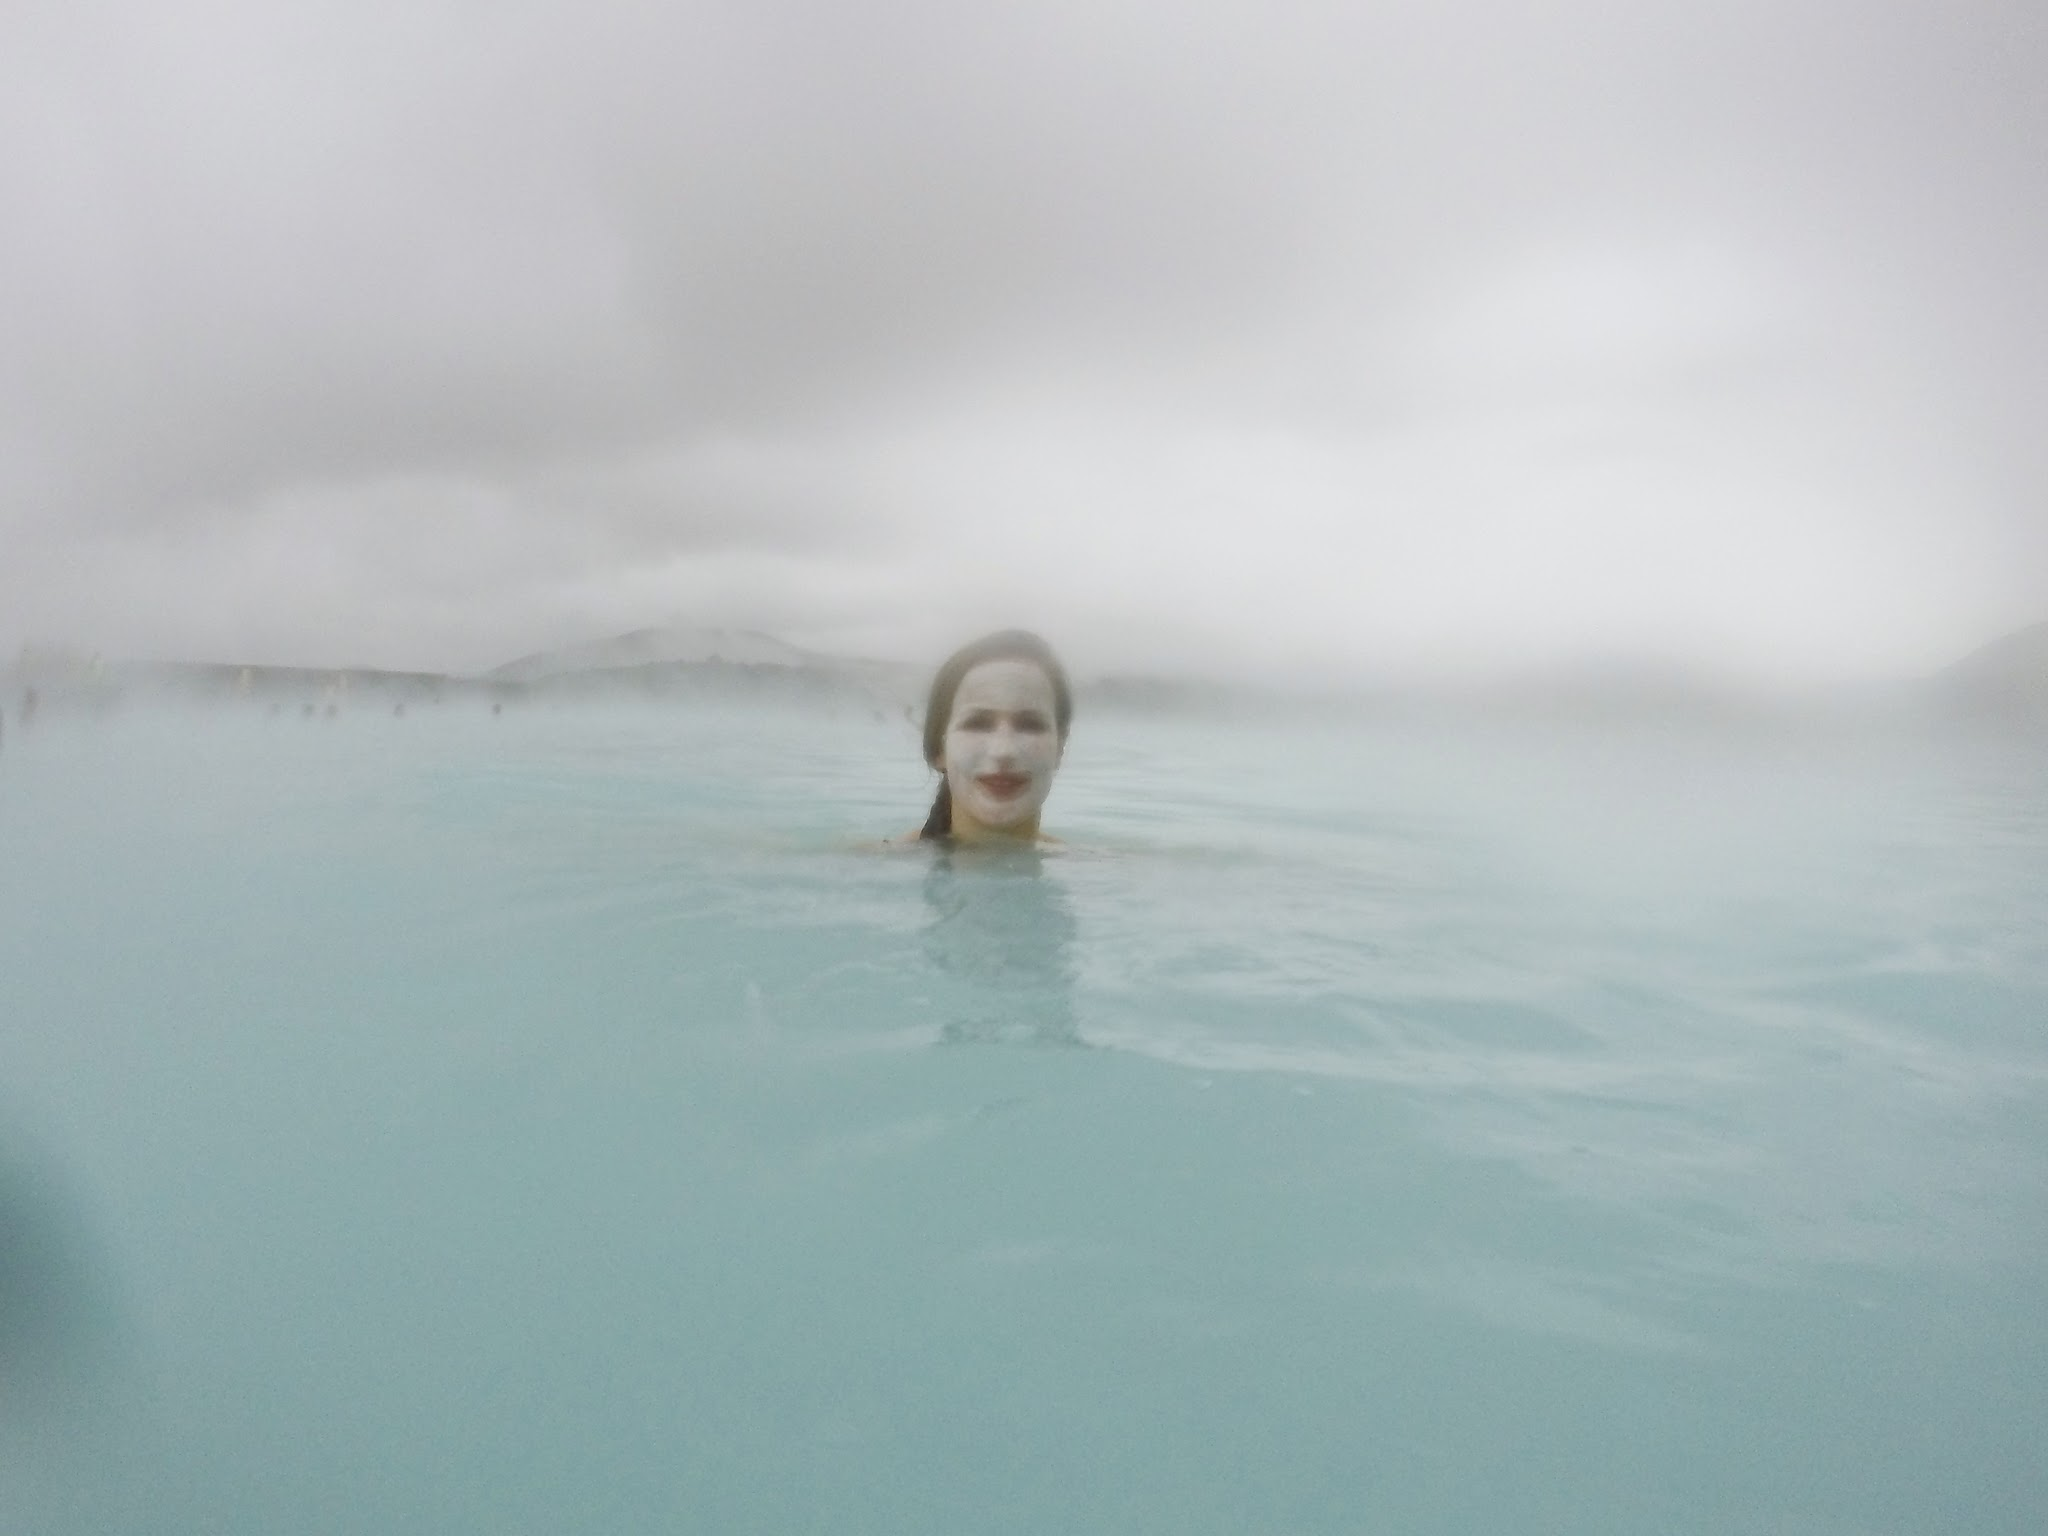 fisheye lens, woman with face mask on in water